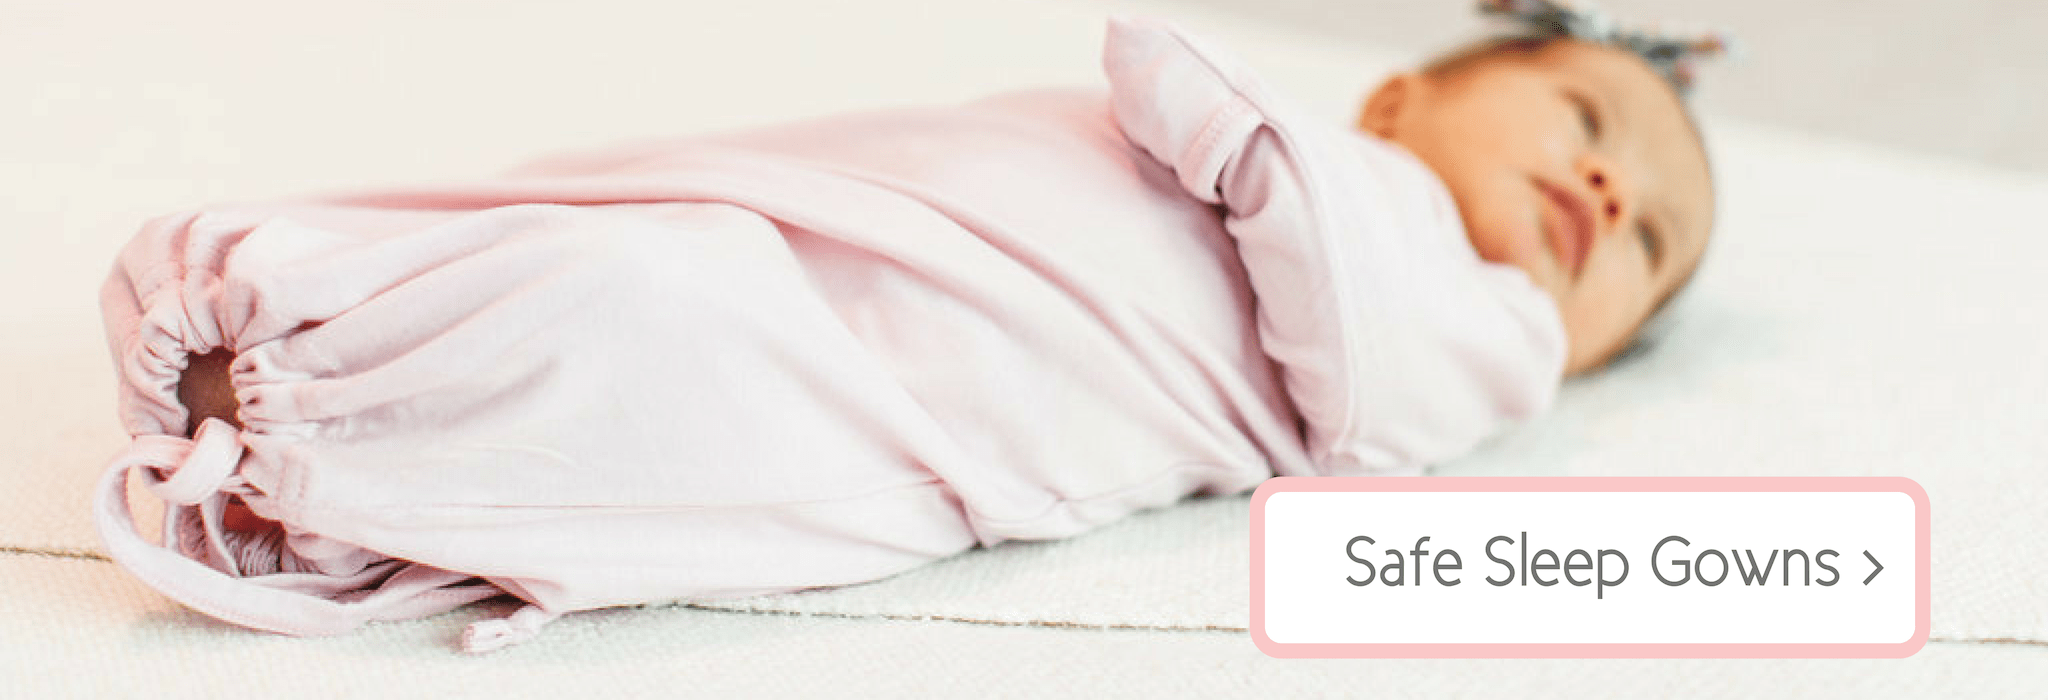 shop-safe-westyn-baby-sleeper-gowns